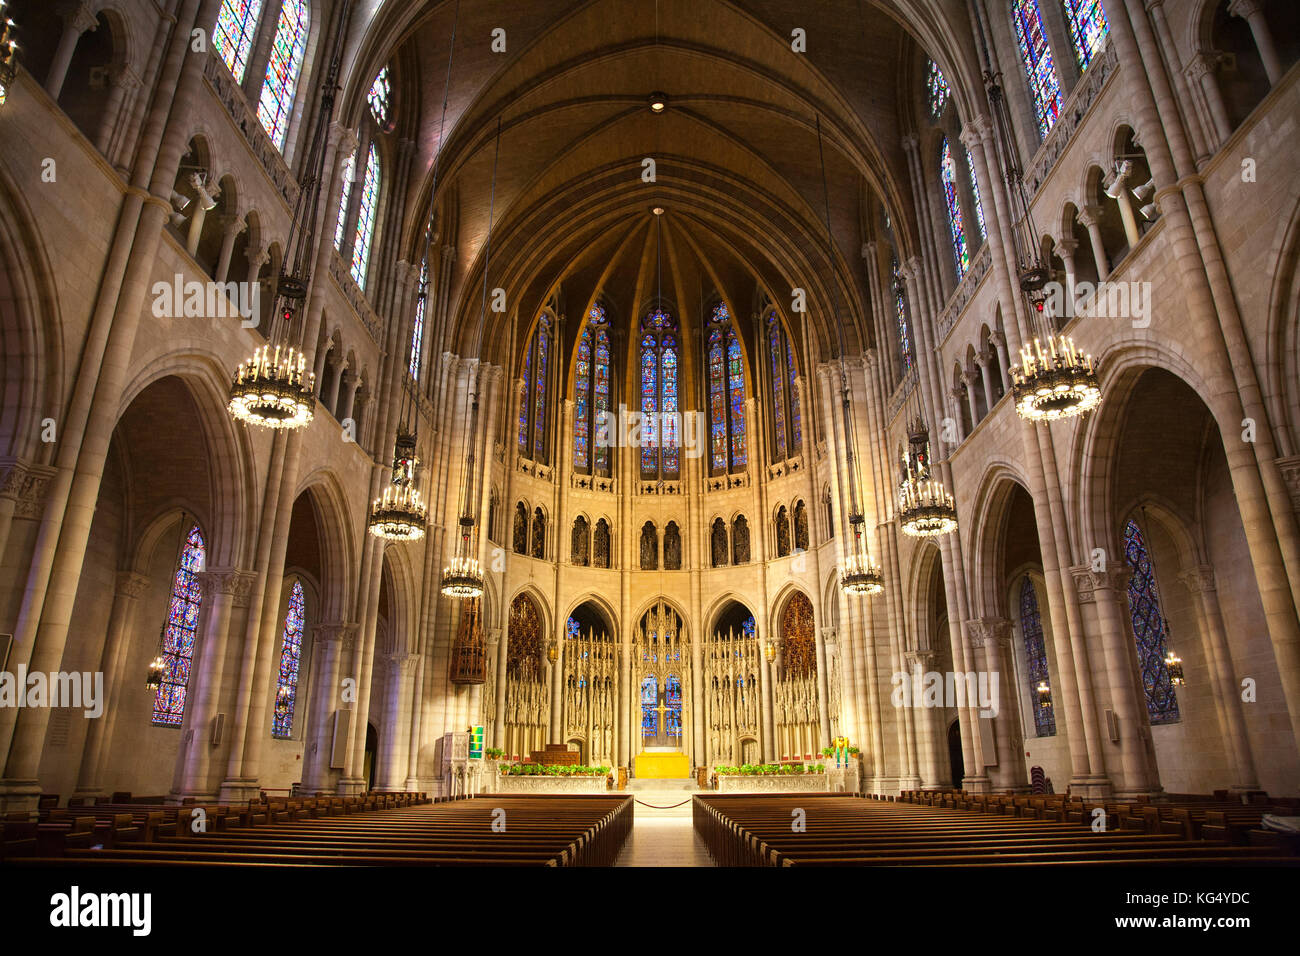 A part of the interior of the Cathedral of St John the Divine, Manhattan, New York, USA, America - Stock Image